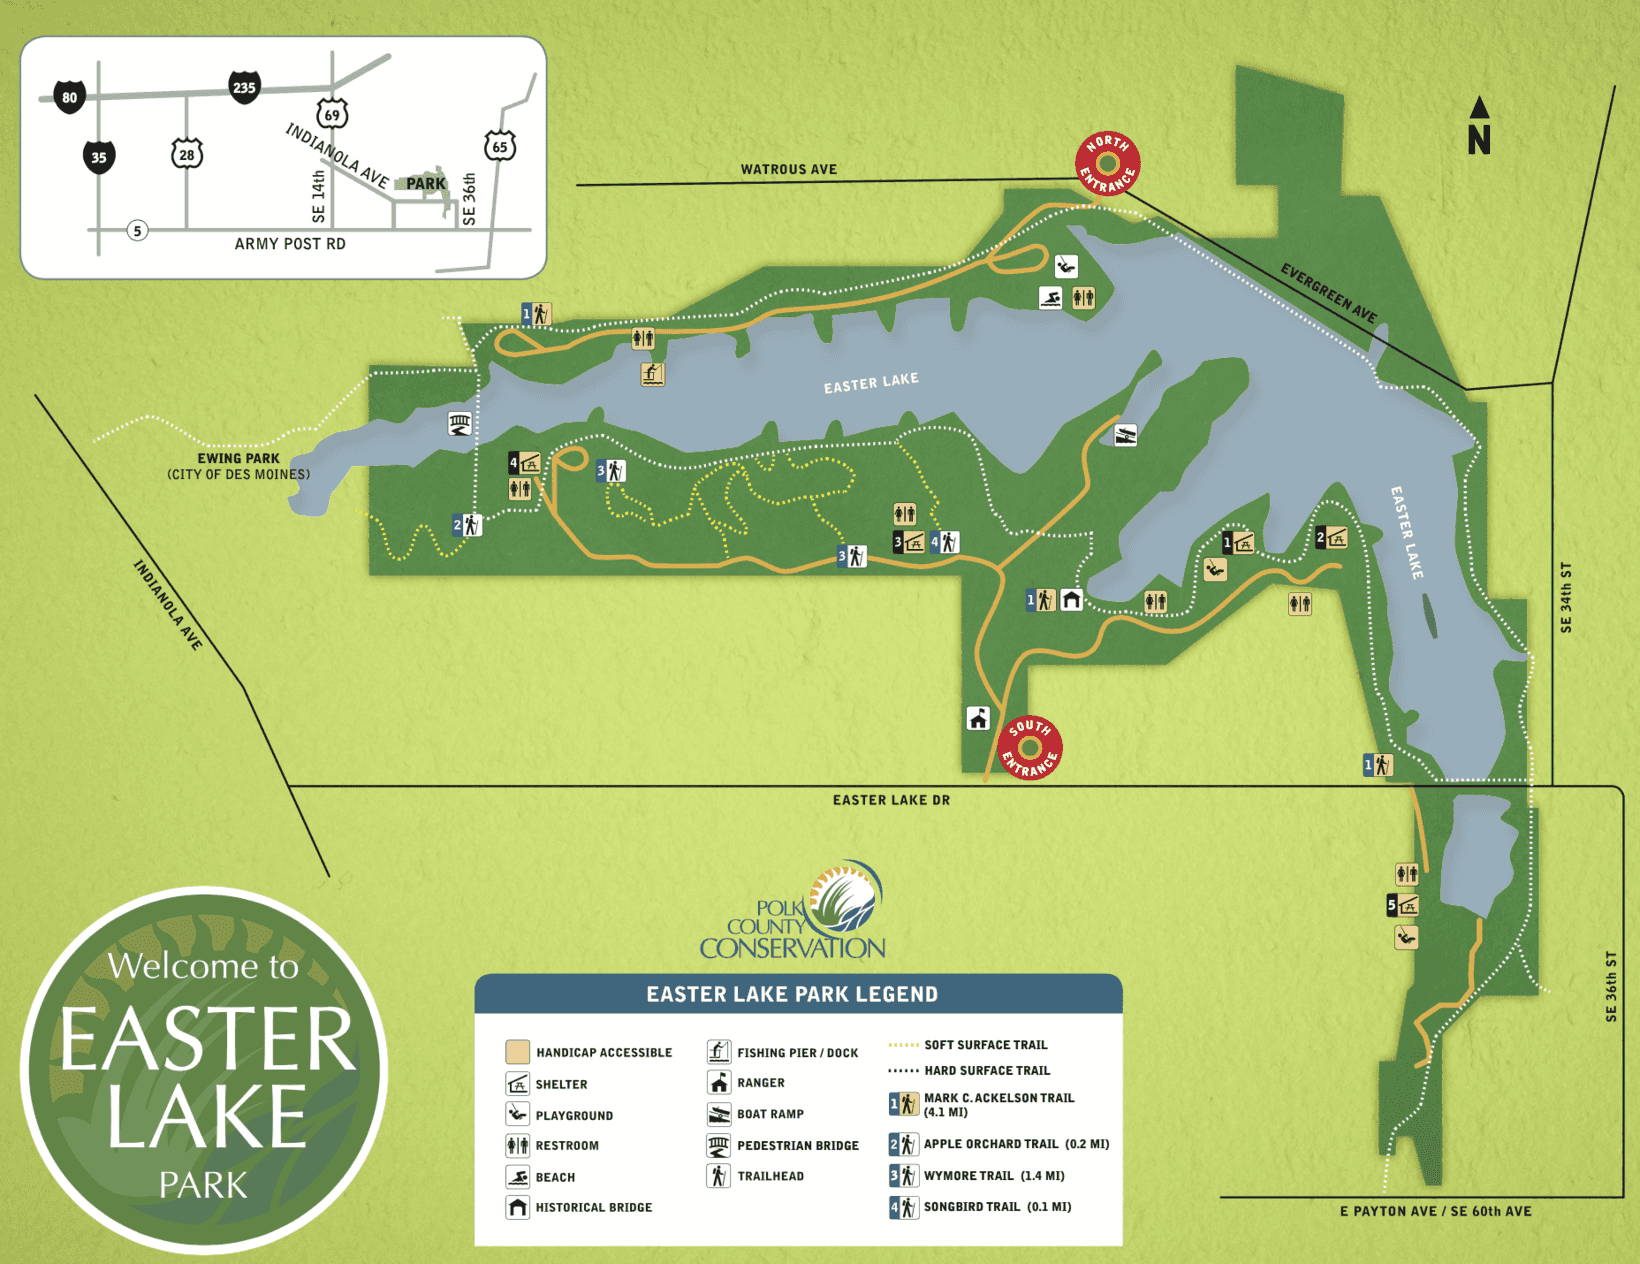 About Easter Lake Park